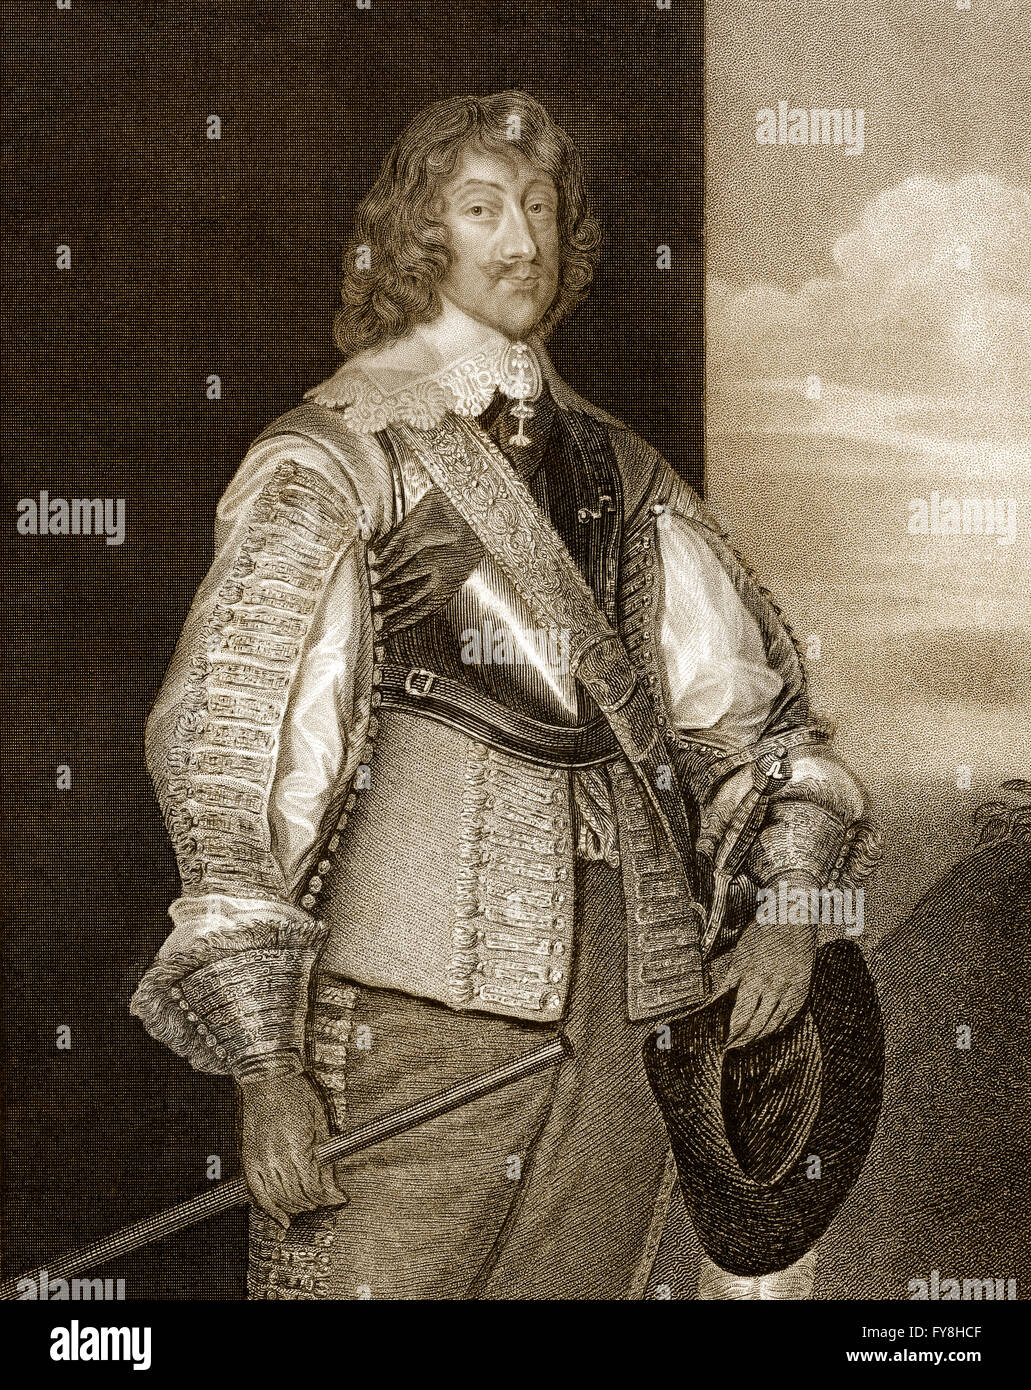 Henry Rich, 1st Earl of Holland, The Lord Kensington, 1590-1649, an English courtier, peer and soldier - Stock Image